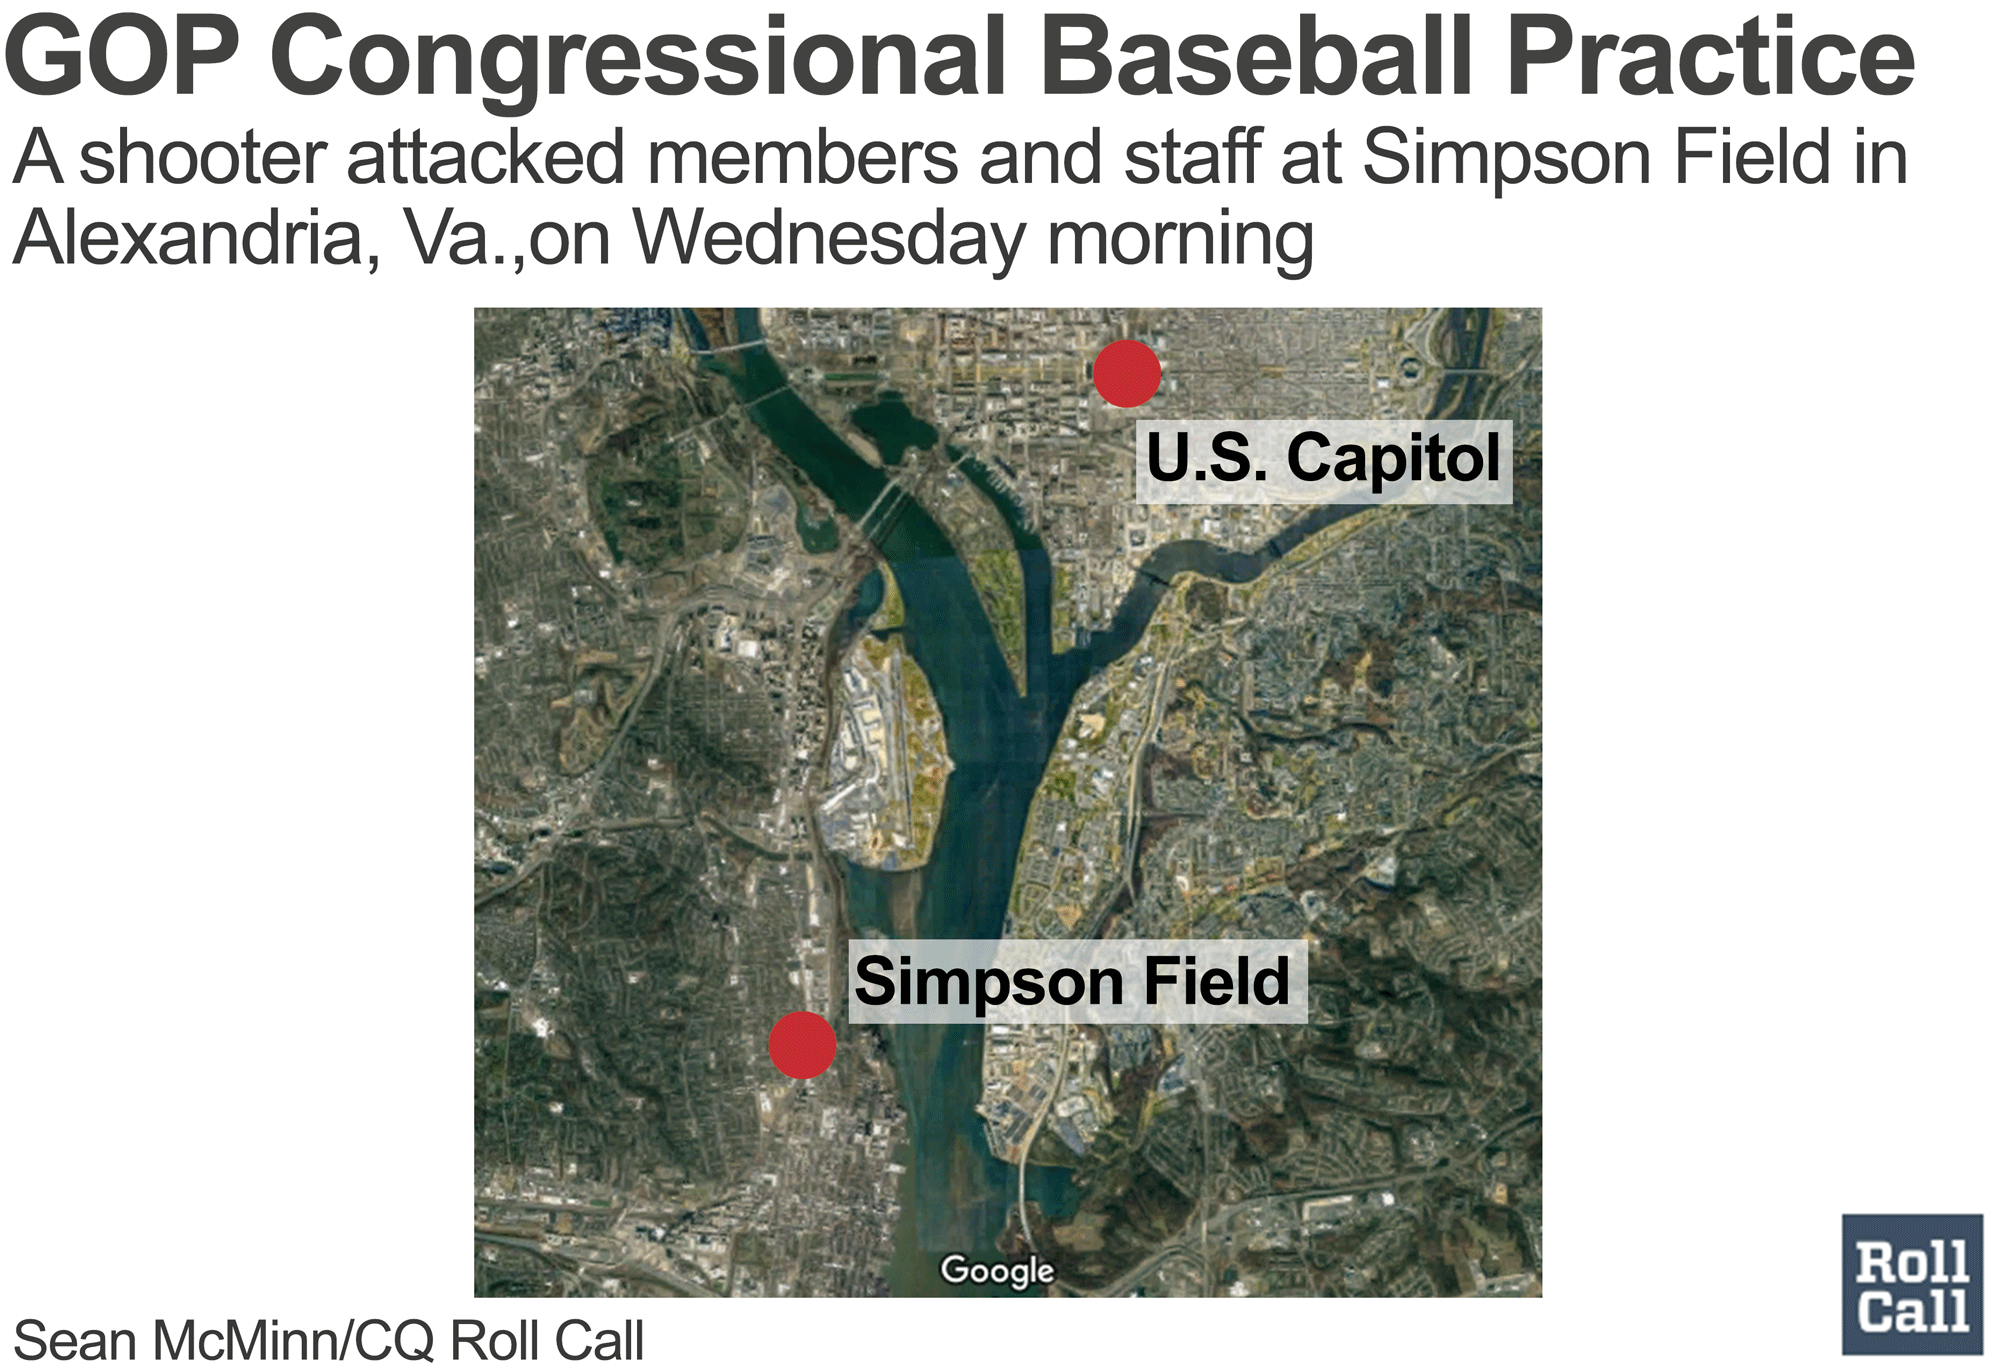 Giffords: My heart is with victims of shooting at GOP baseball practice